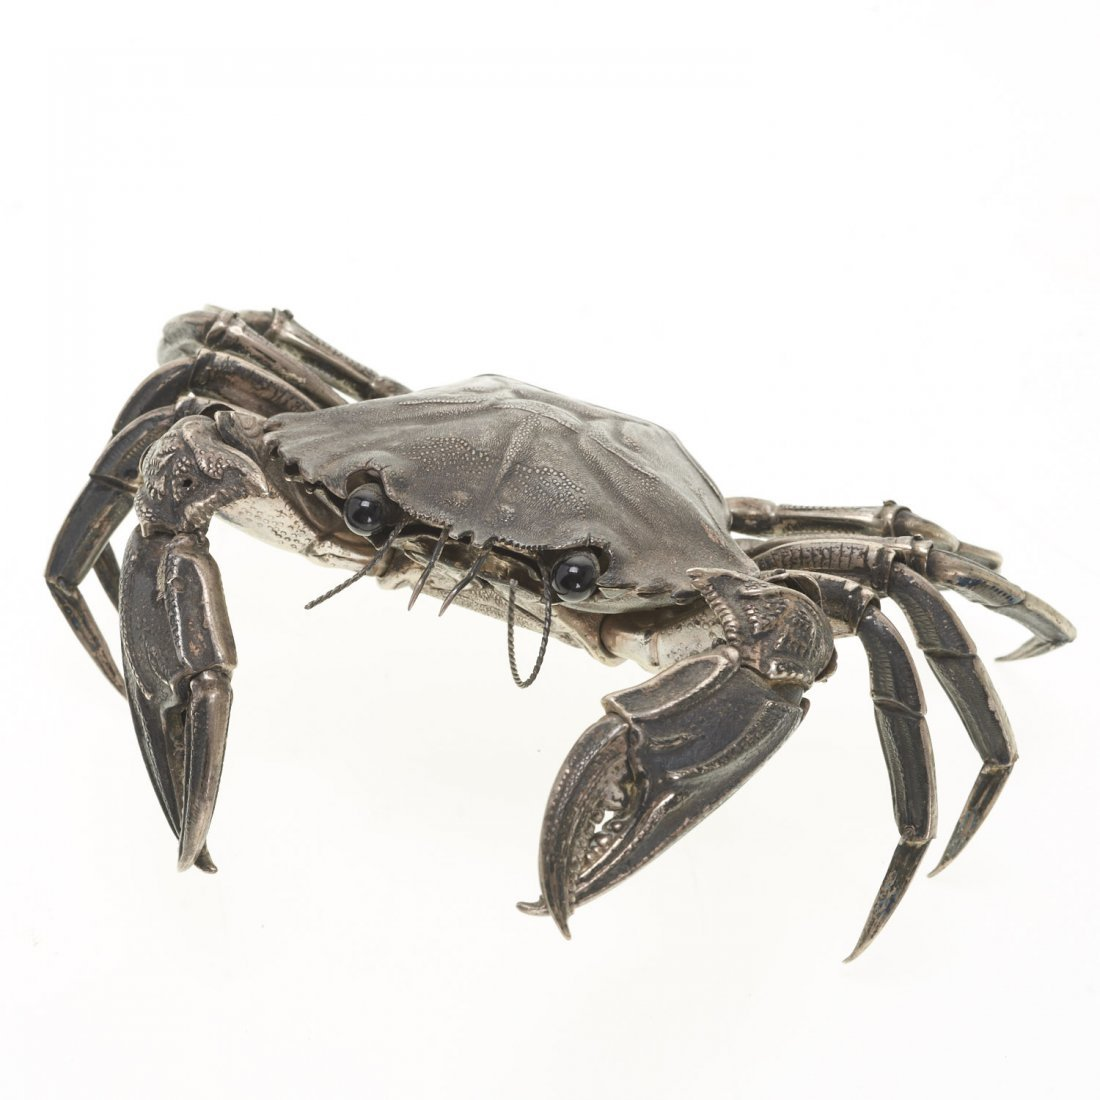 Spanish silver articulated model of a crab